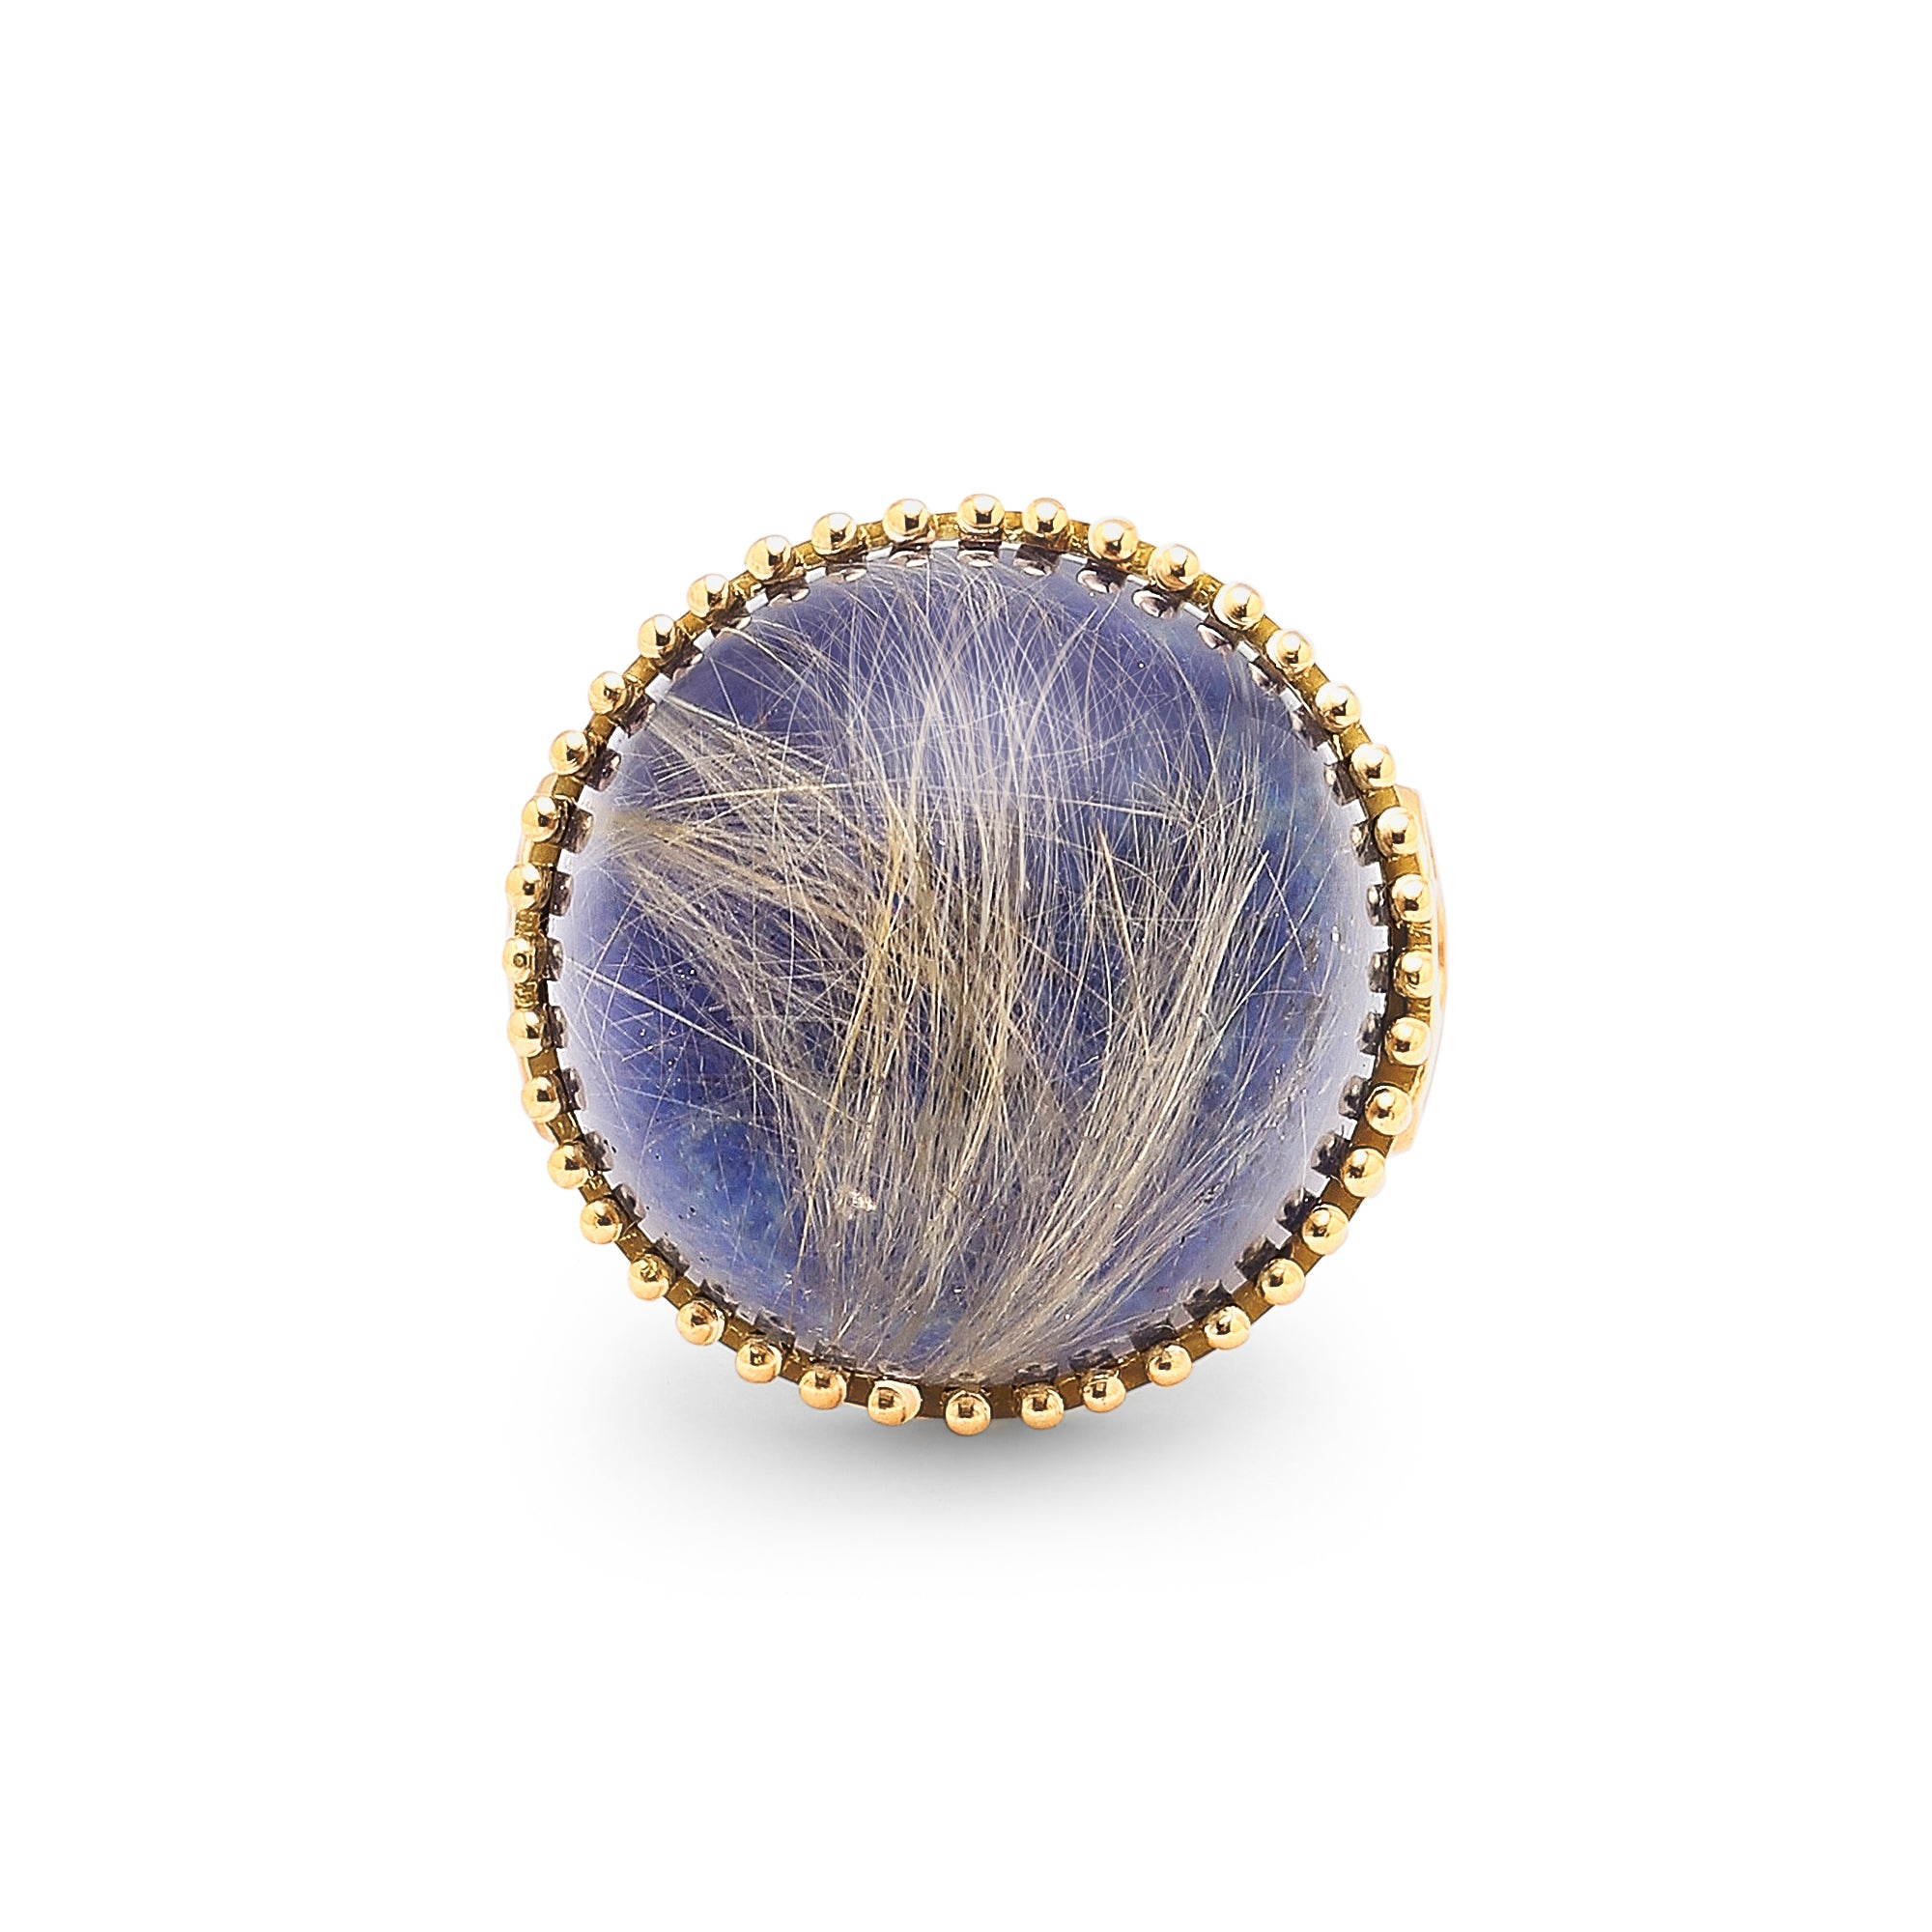 Round Rutilated Quartz over Lapis Lazuli Doublet Coin Band Ring